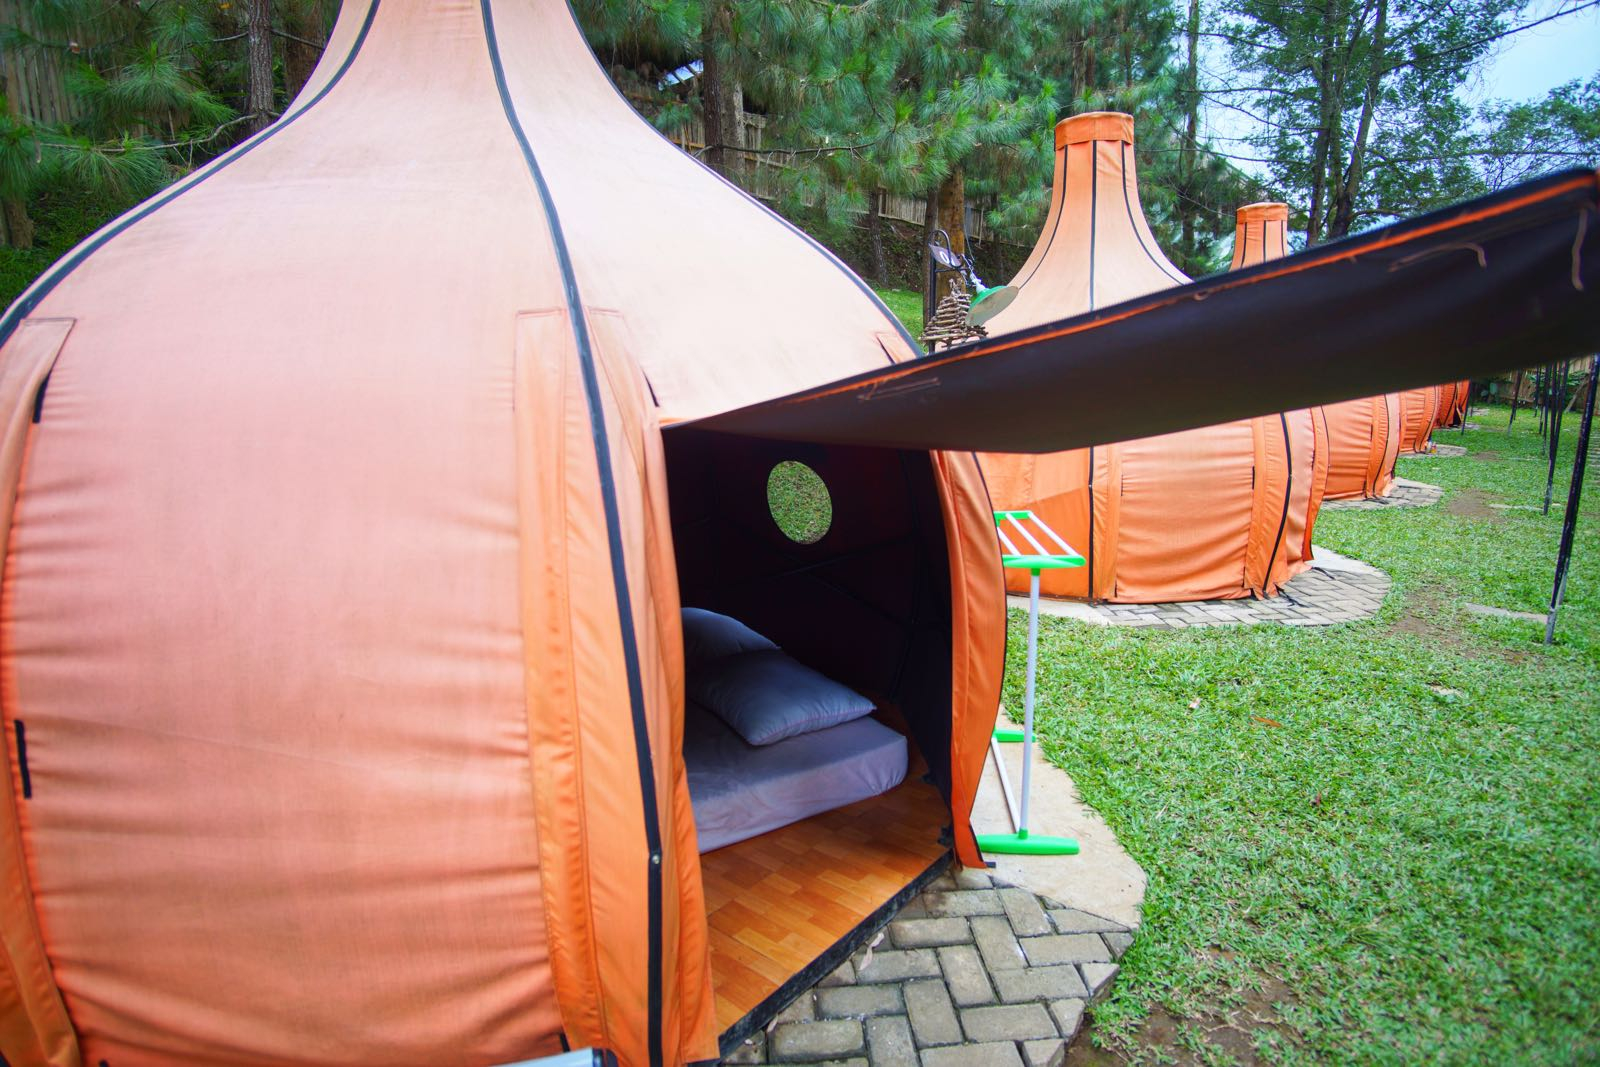 Camping The Lodge Maribaya Tenda Luar